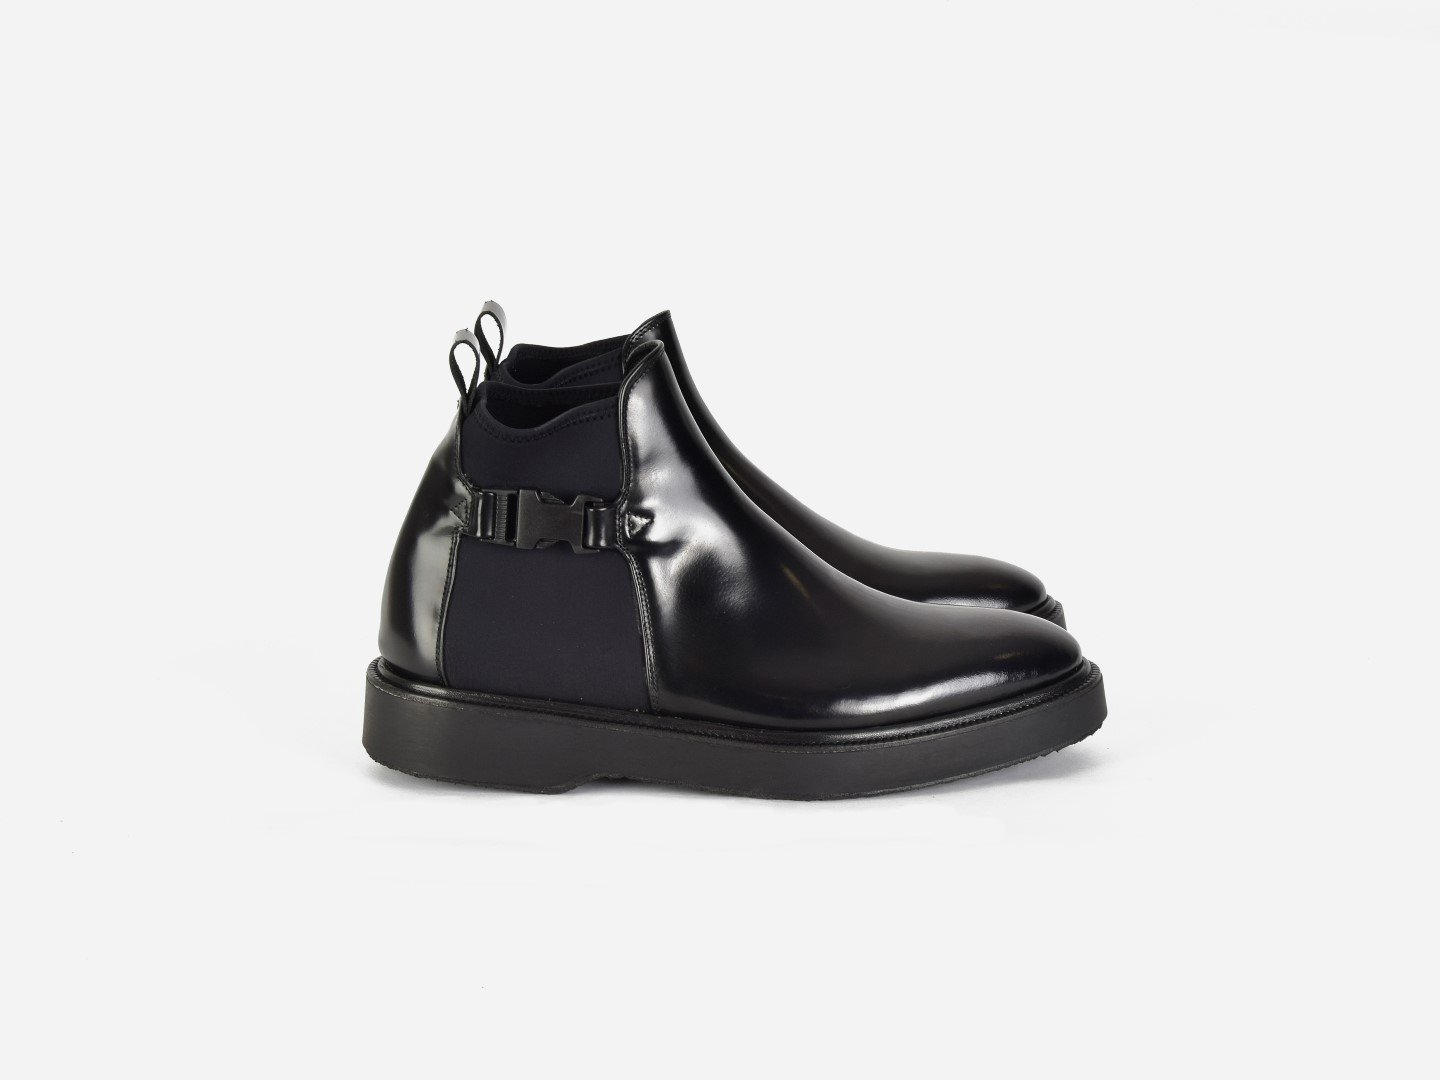 pregis shay black leather chelsea boot made in Portugal